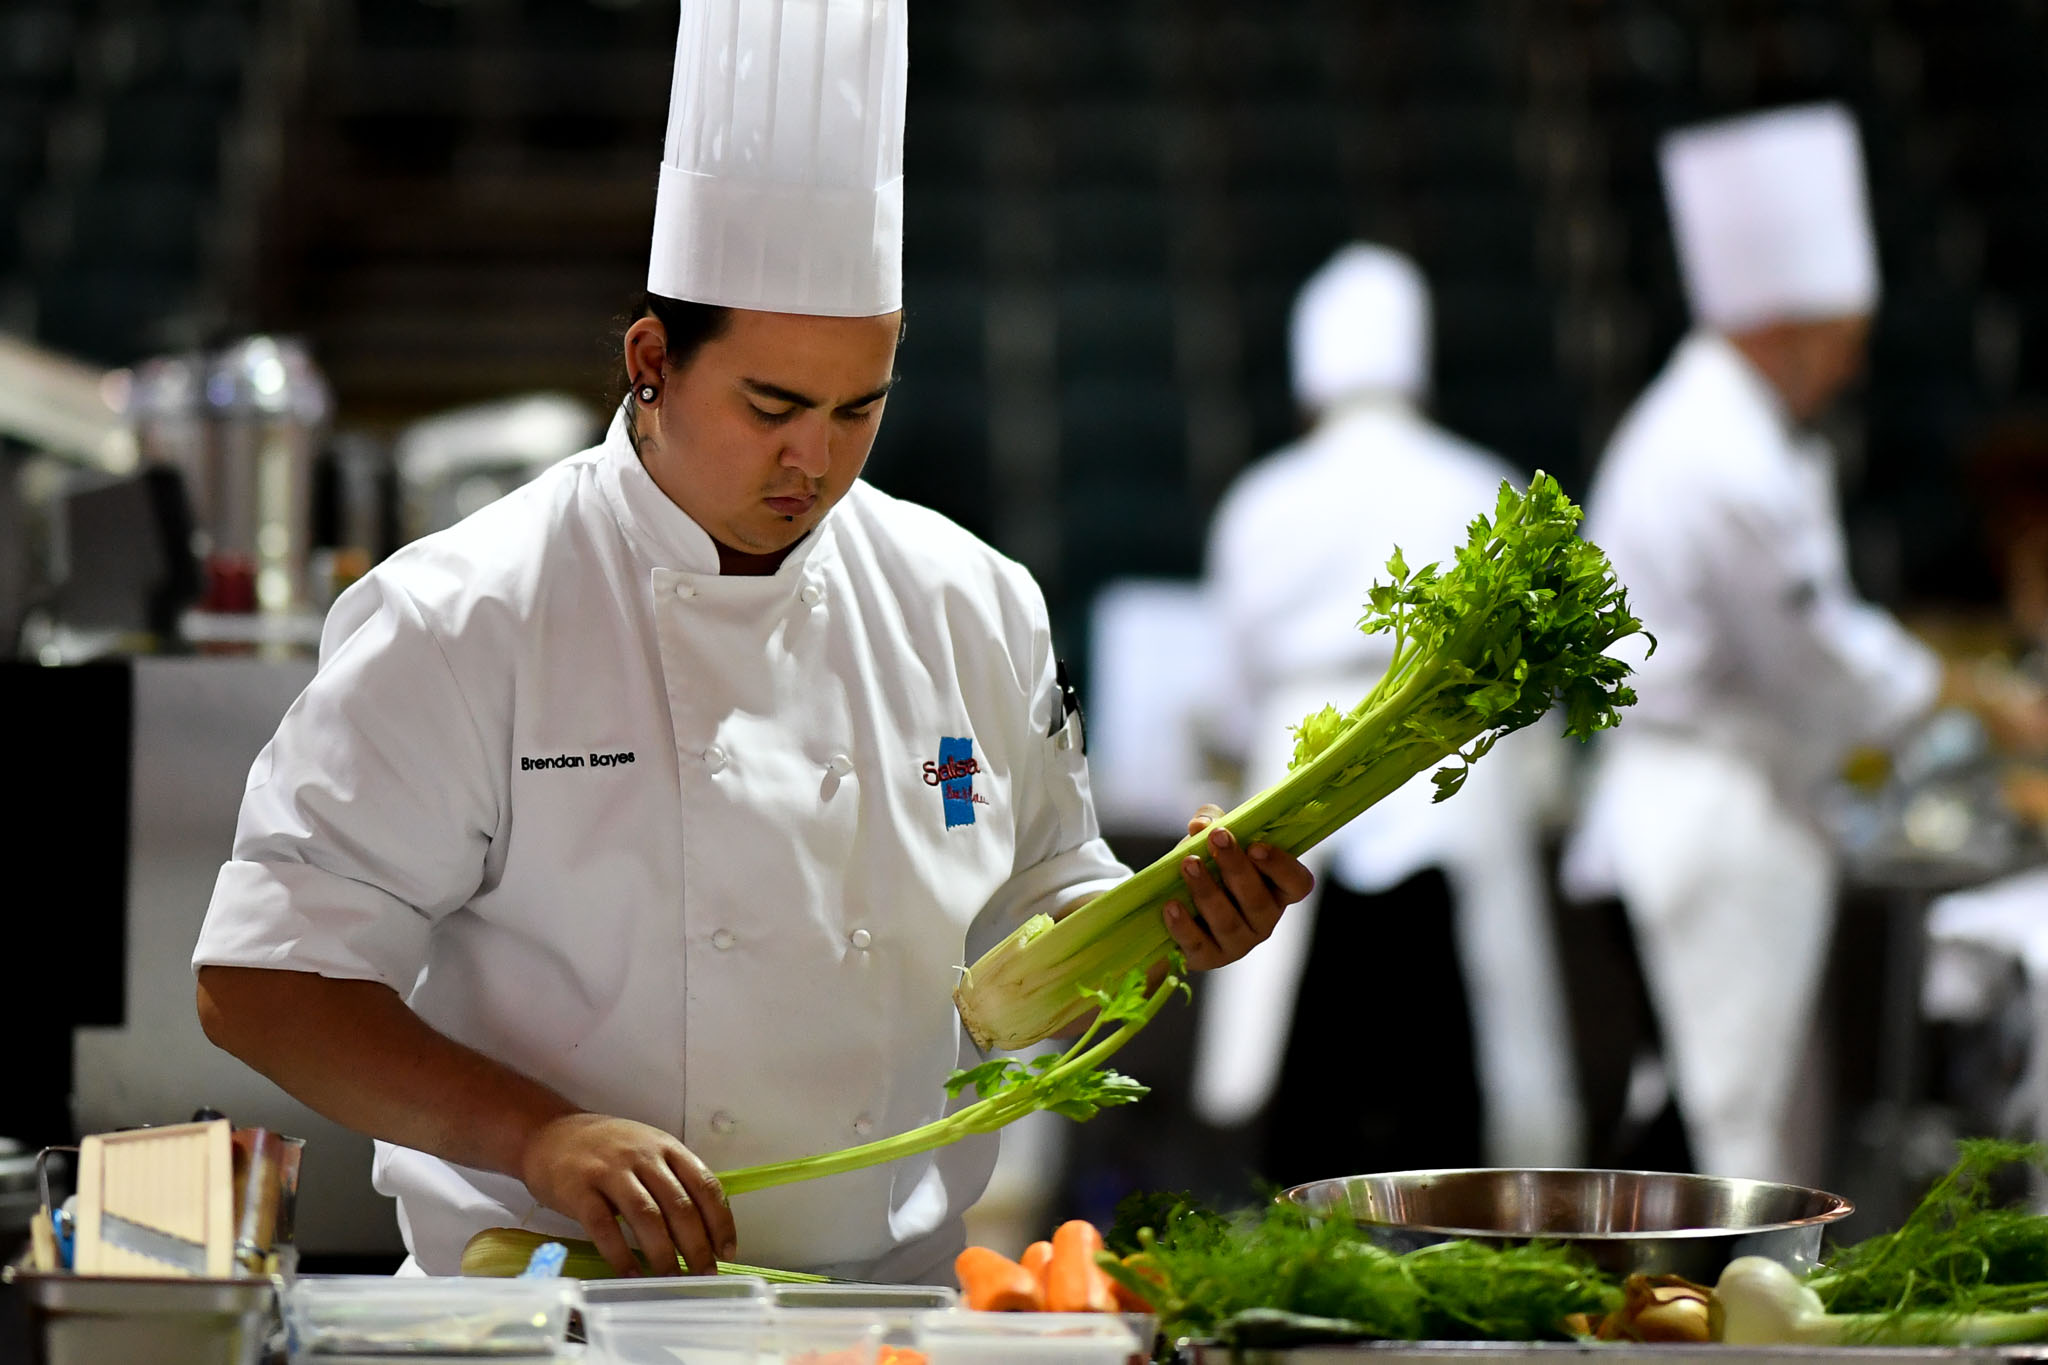 Melbourne, 30 May 2017 - Brendan Bayes commis chef assisting Tyson Kromhout of the Salsa Bar & Grill in Port Douglas prepares vegetables at the Australian selection trials of the Bocuse d'Or culinary competition held during the Food Service Australia show at the Royal Exhibition Building in Melbourne, Australia. Photo Sydney Low